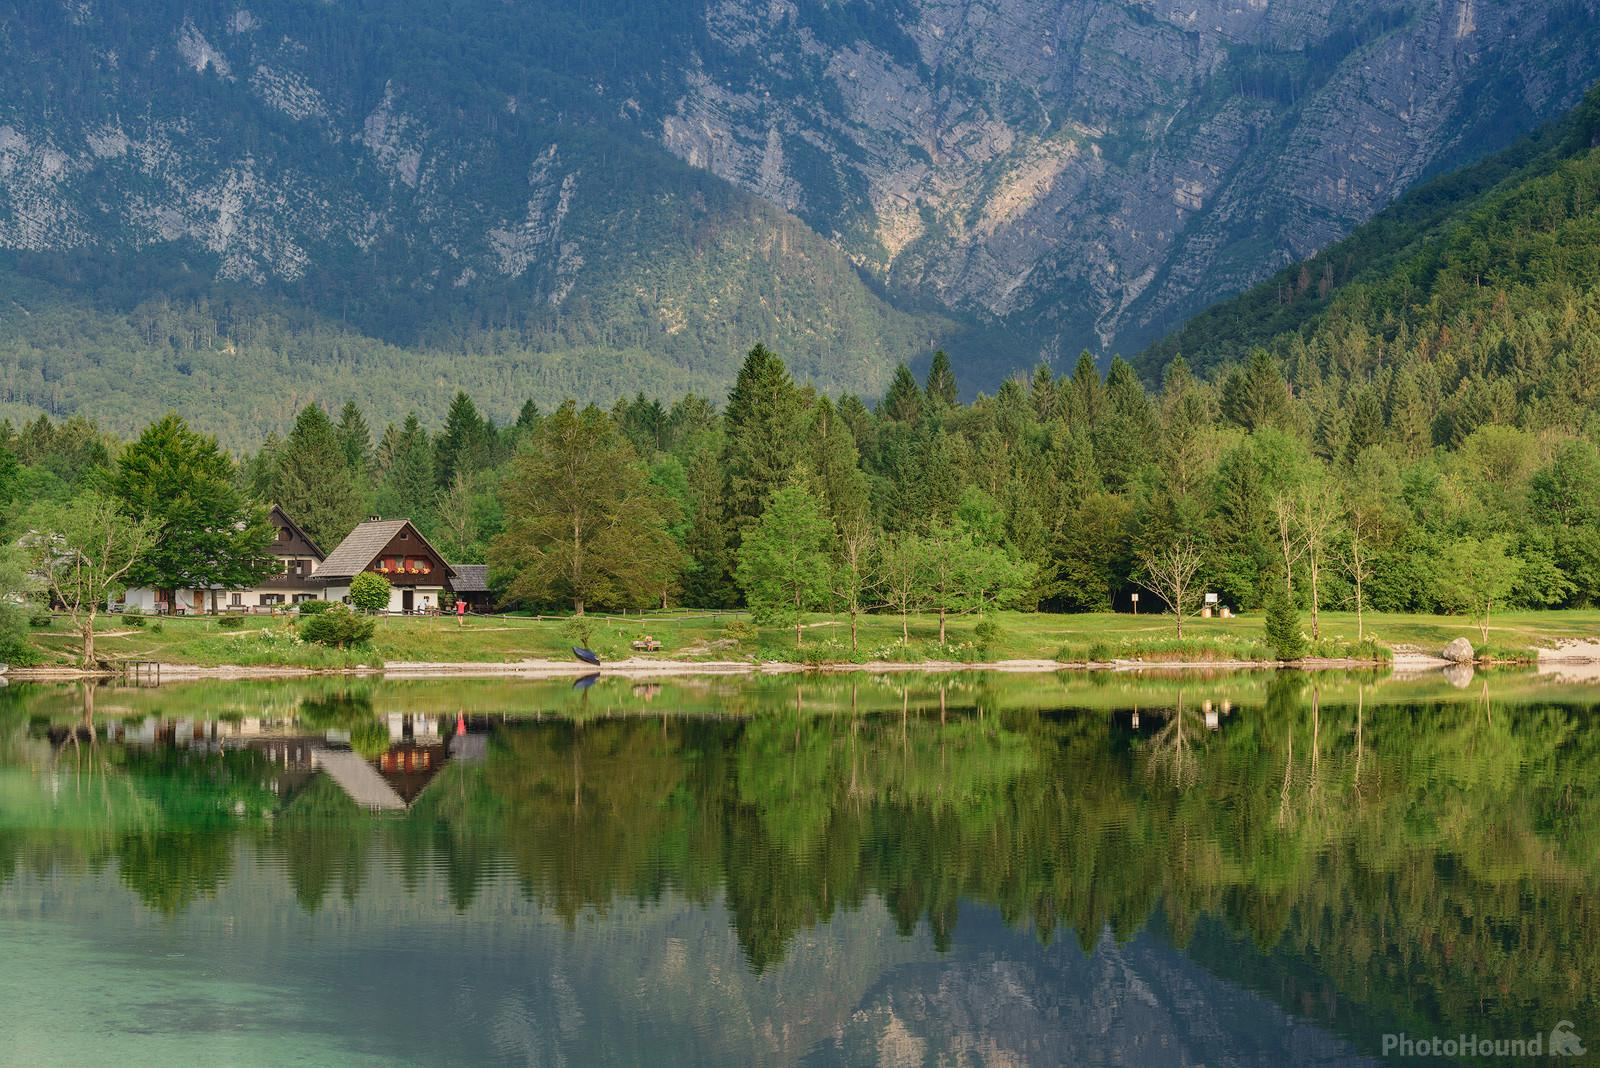 Lake Bohinj, Ukanc area